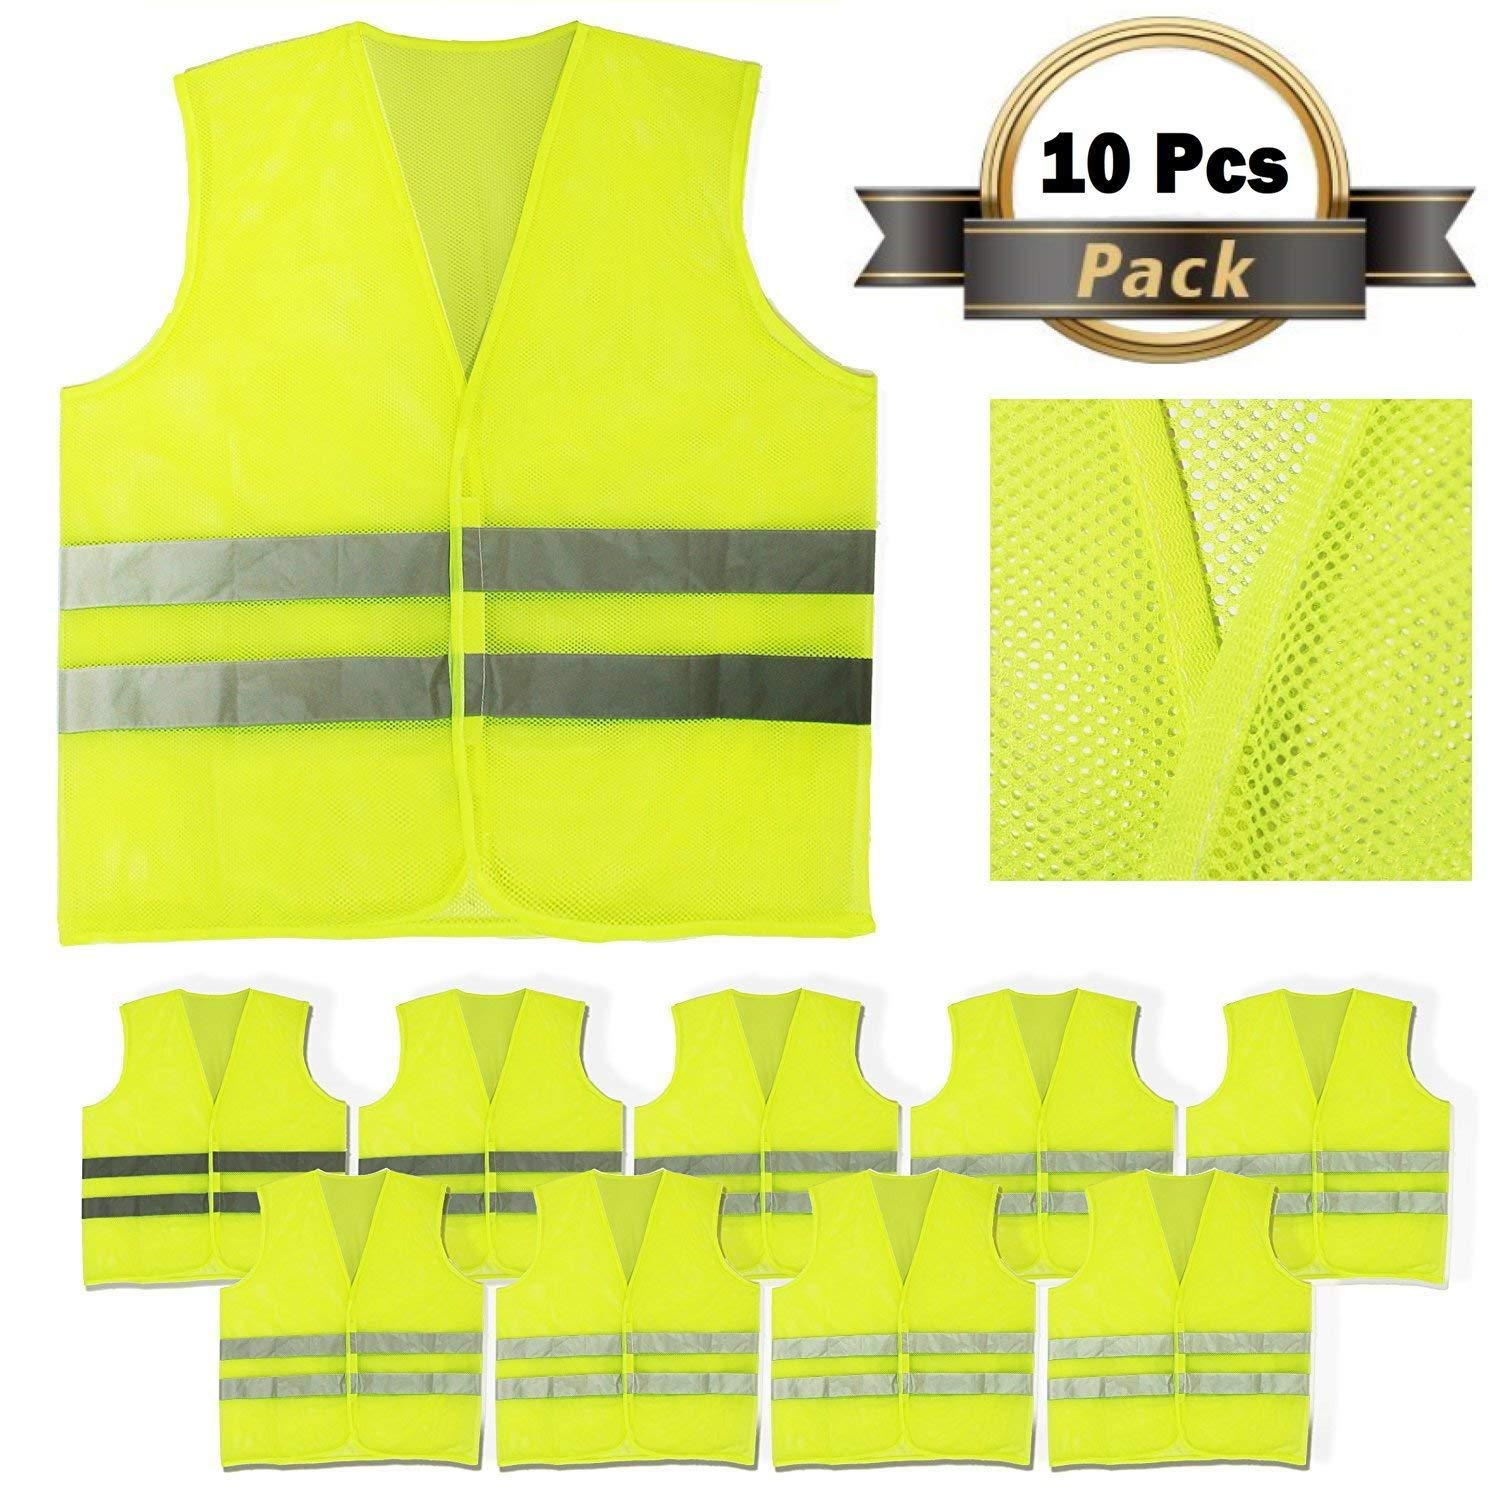 Safety Clothing Efficient Reflective Vest Breathable Mesh Multi Pockets Construction Traffic Safety Protective Jacket Fluorescent Clothes Work Clothing